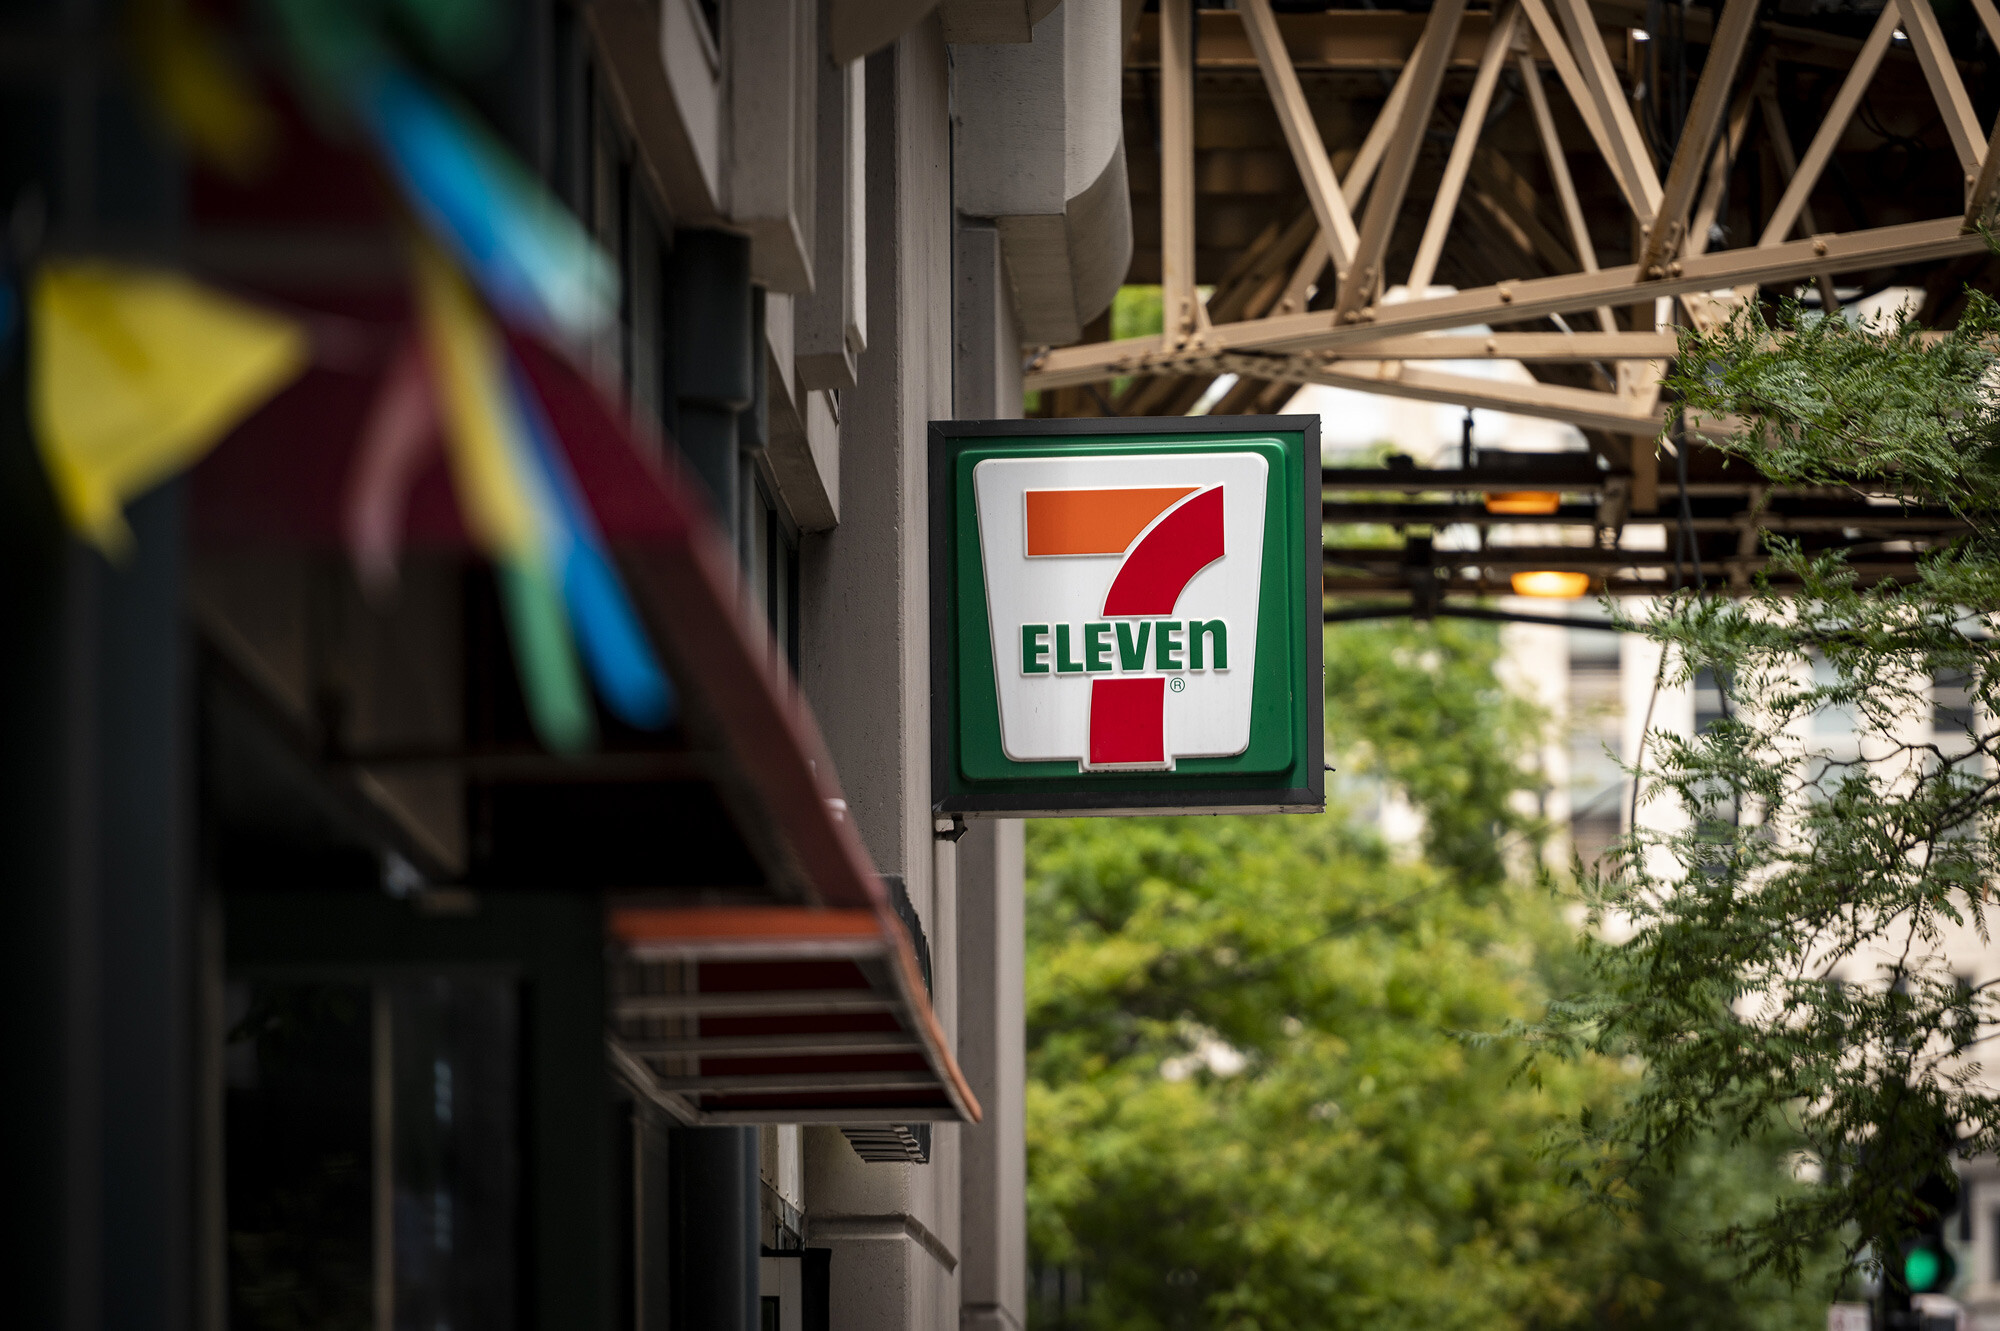 India's $99 billion man is opening the country's first 7-Eleven